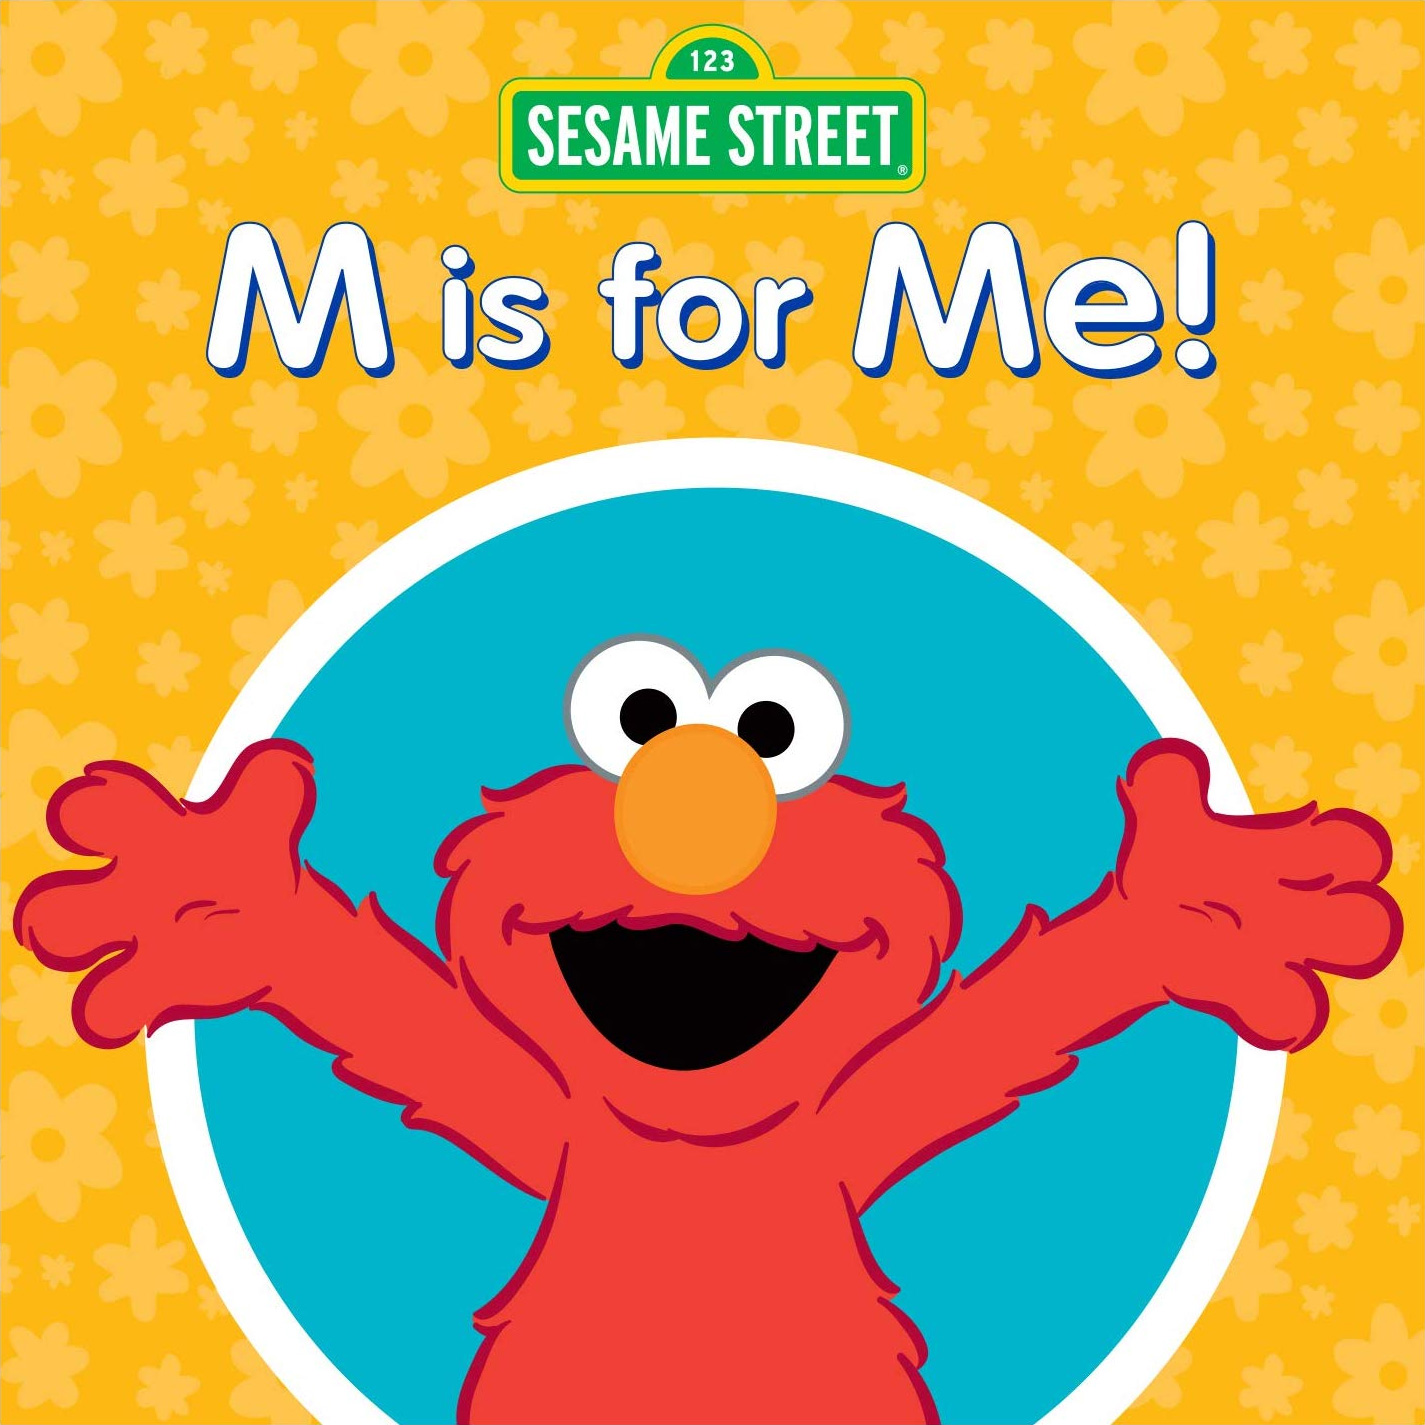 M is for Me! | Muppet Wiki | FANDOM powered by Wikia